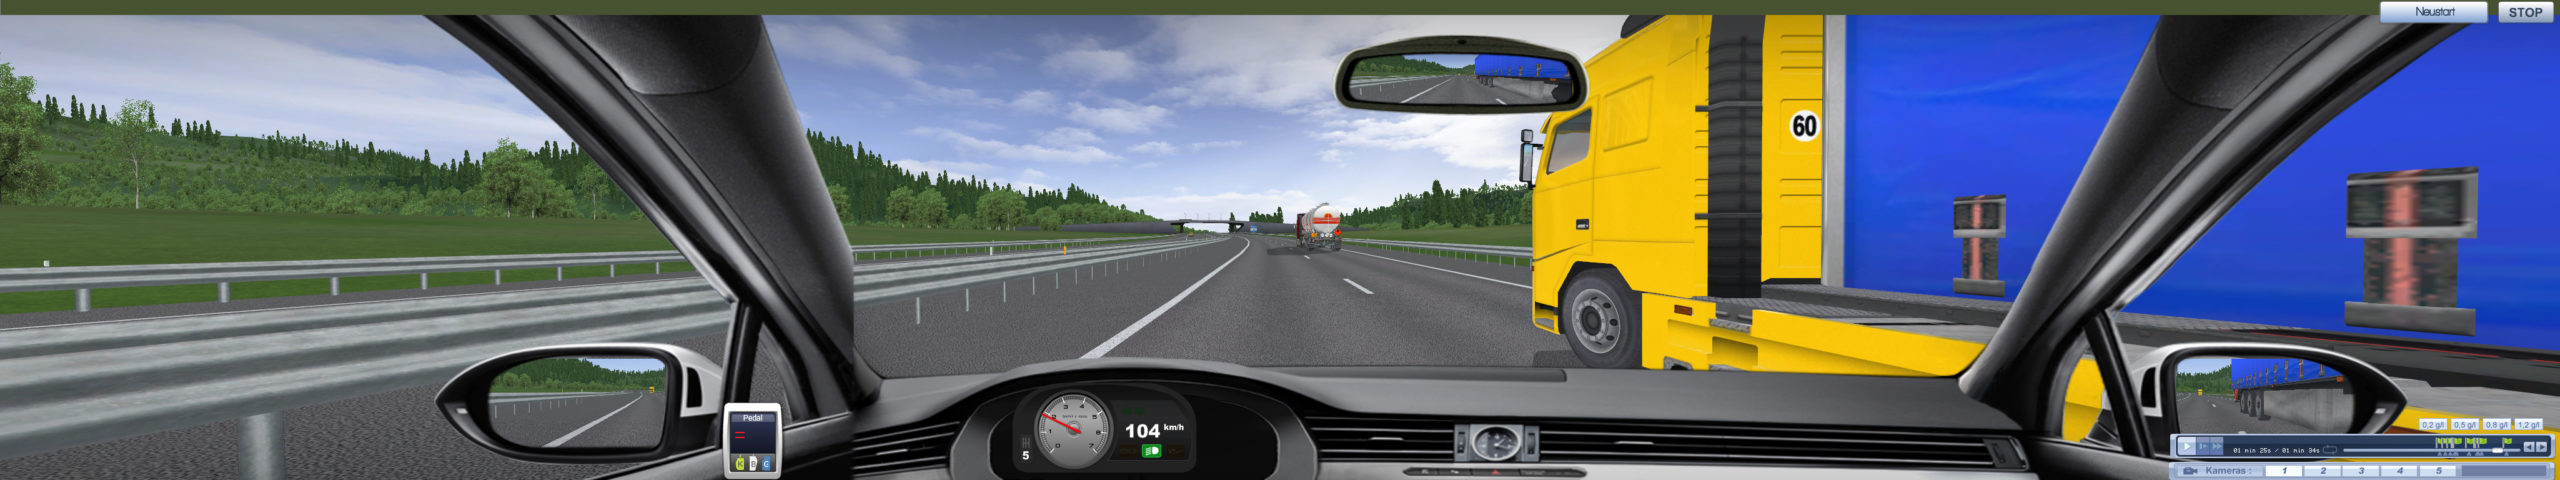 VERKEHRSSIMULATIONSSOFTWARE ROAD STAR